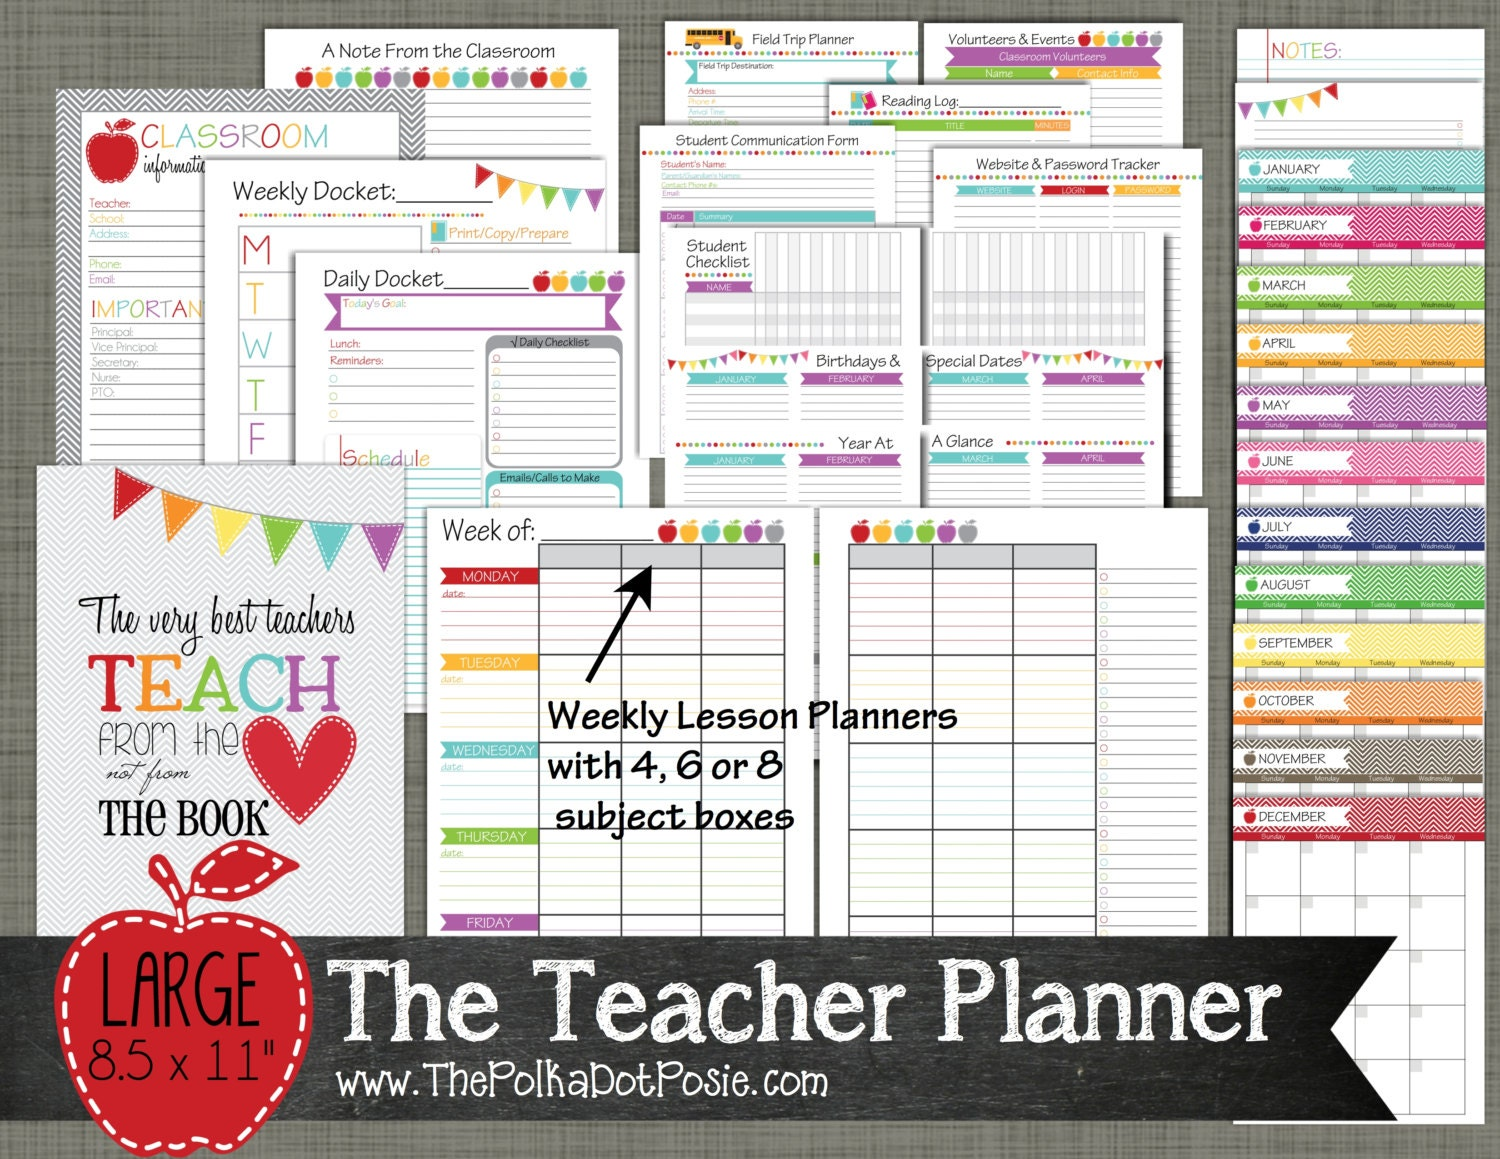 This is a photo of Genius Printable Teacher Planner